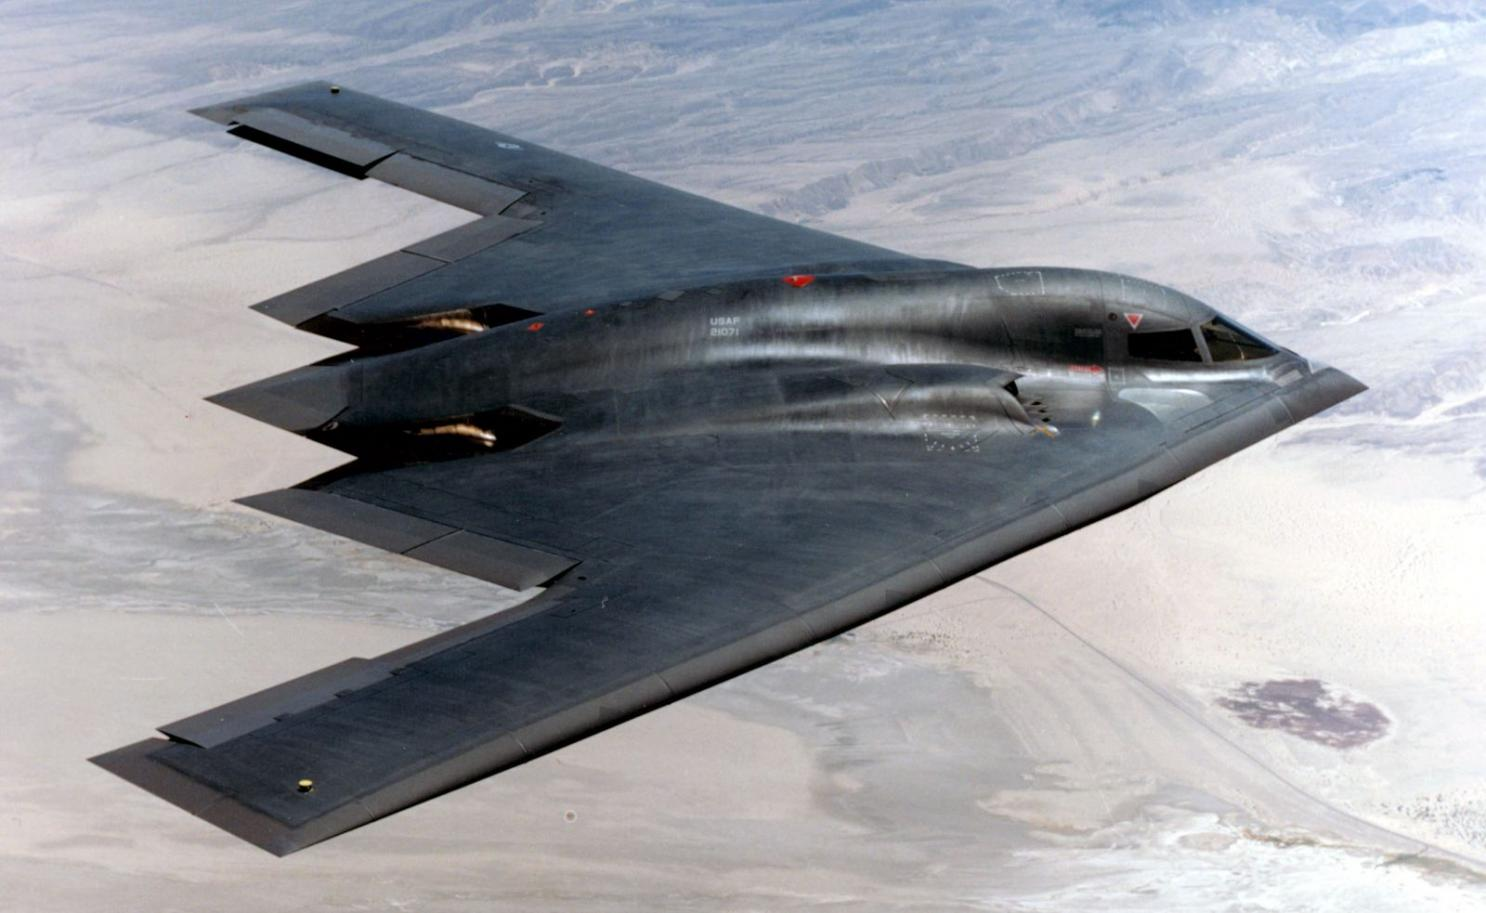 The Scary Way a Stealth Fighter Could Be Shot Down